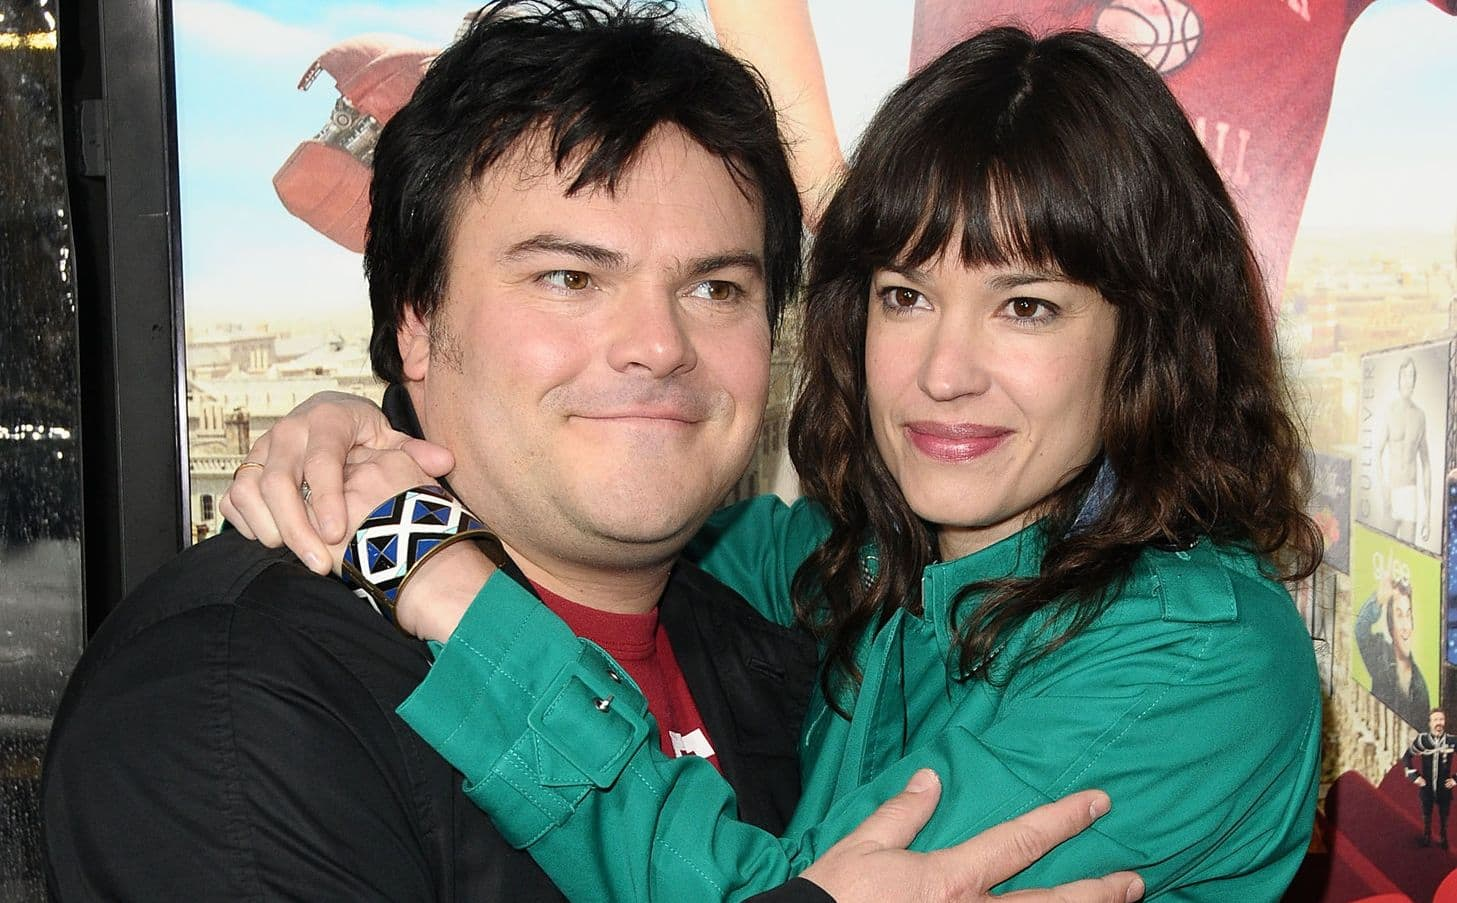 Who is dating jack black